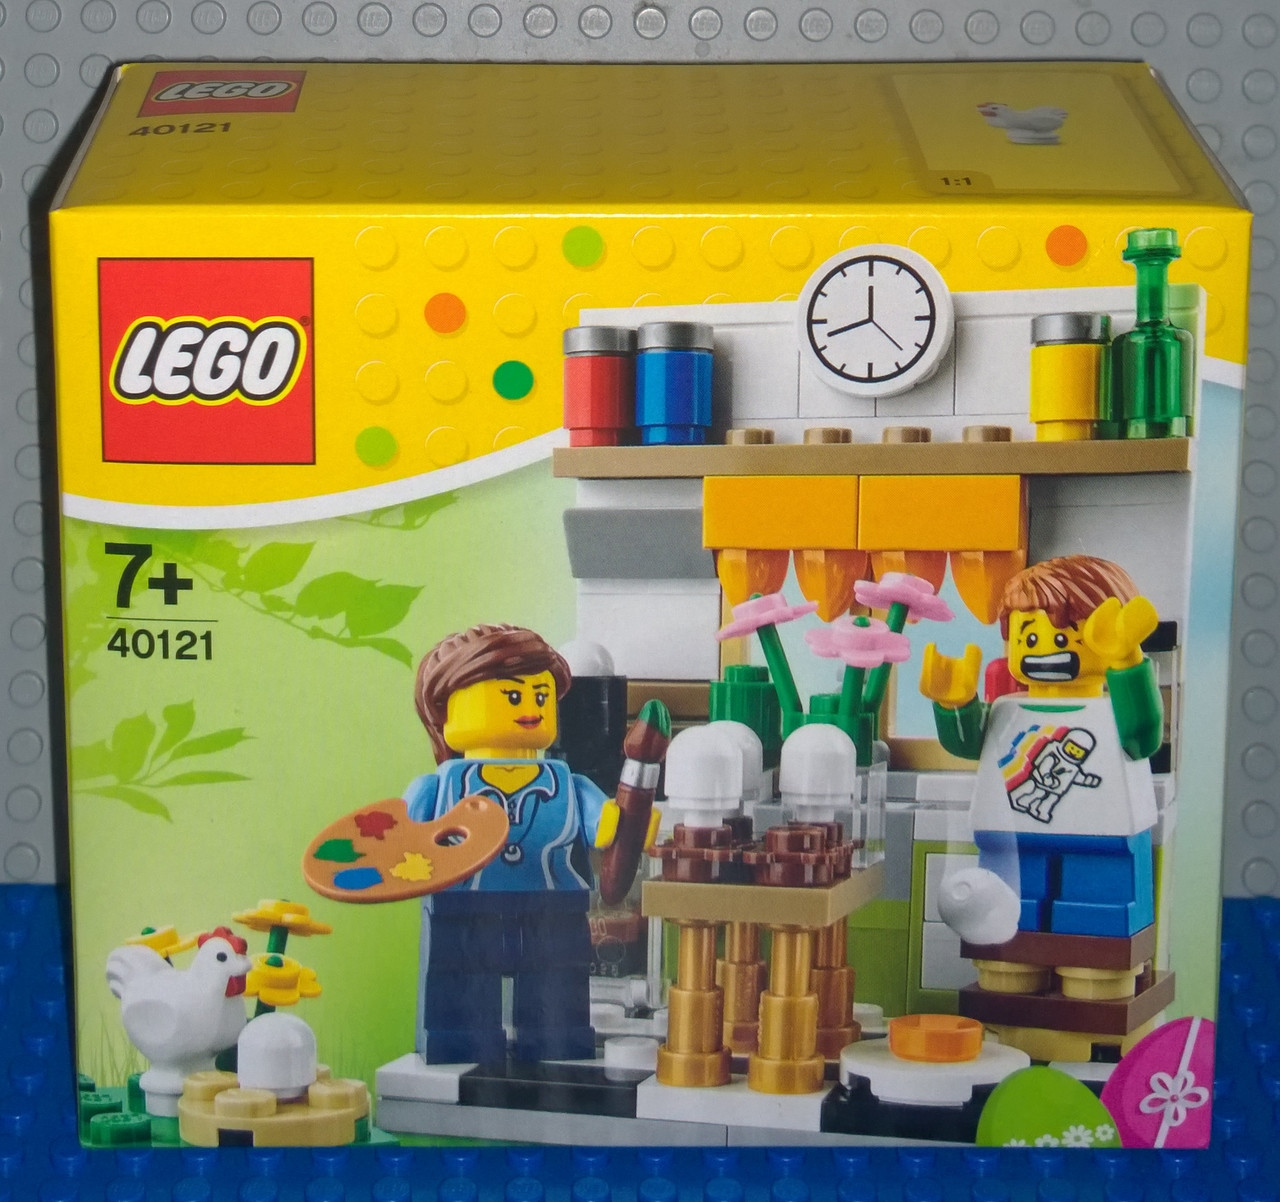 40121 Lego Painting Easter Eggs Brick Lady